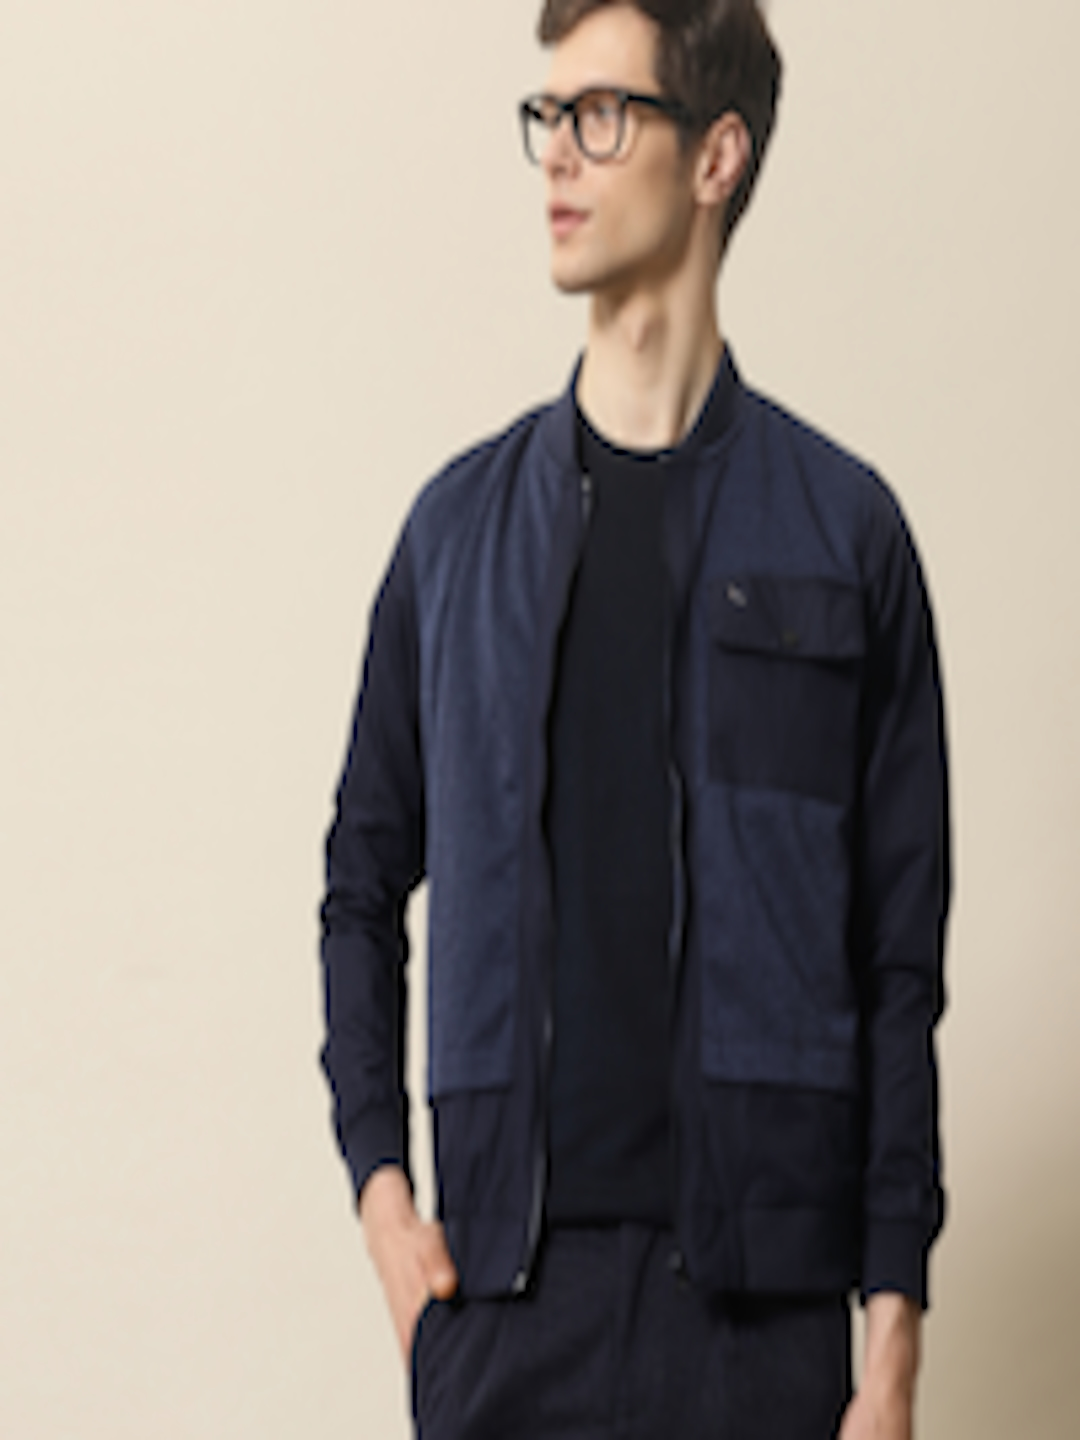 Buy Mr Bowerbird Men Navy Blue Solid Tailored Fit Bomber ...